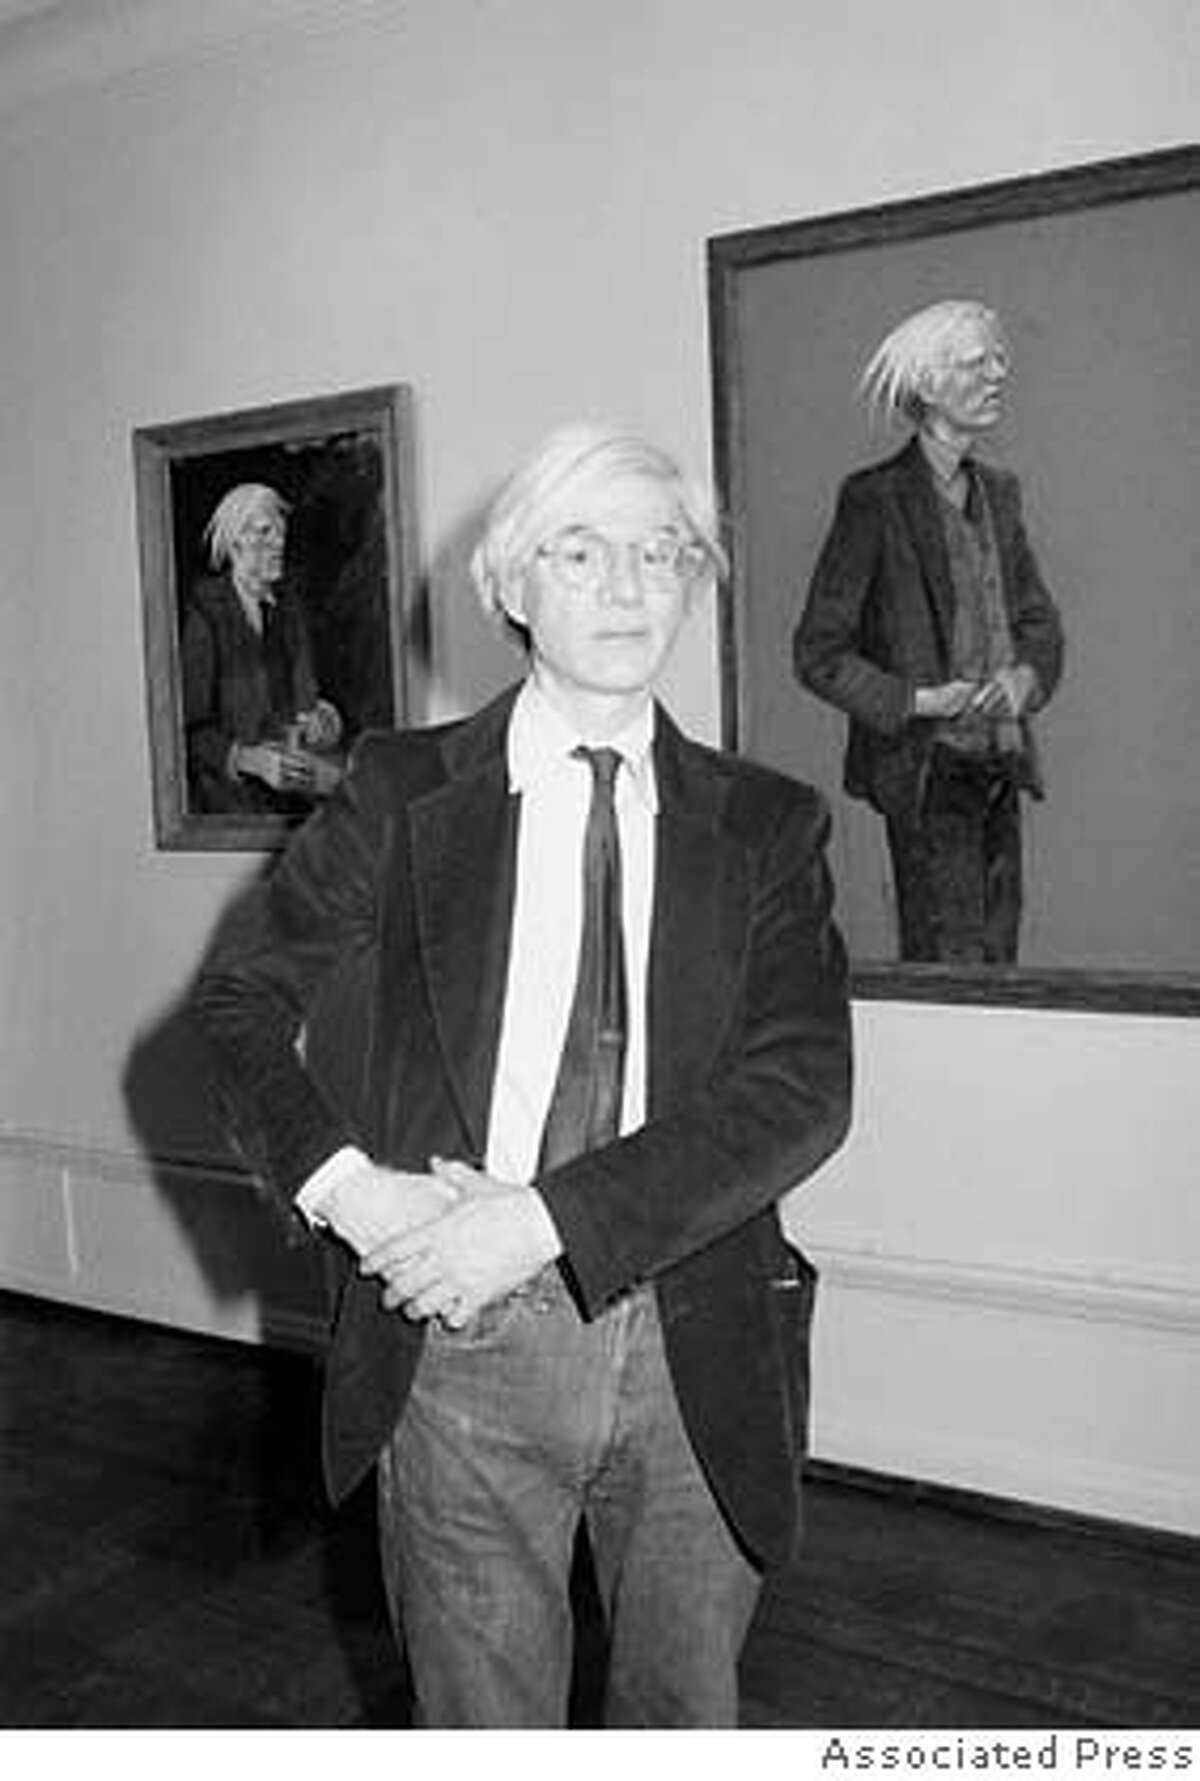 Pop artist Andy Warhol poses in front of a portrait of himself at the show Andy Warhol and Jamie Wyeth: Portraits of Each Other at the Coe Kerr Gallery in New York City on June 3, 1976. (AP Photo)